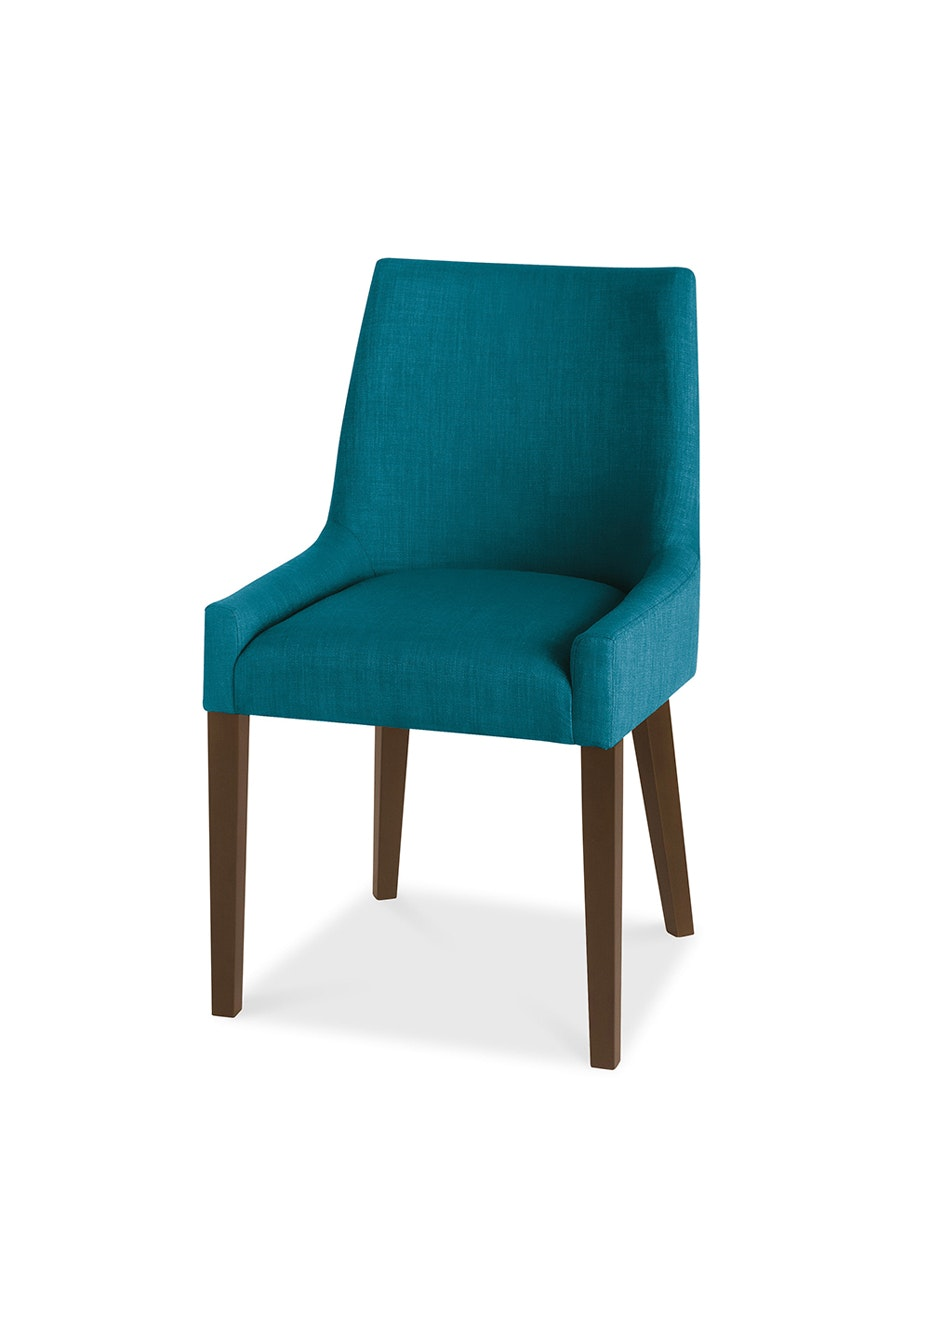 Furniture By Design - Ella Scoop Back Chair- Walnut and Teal